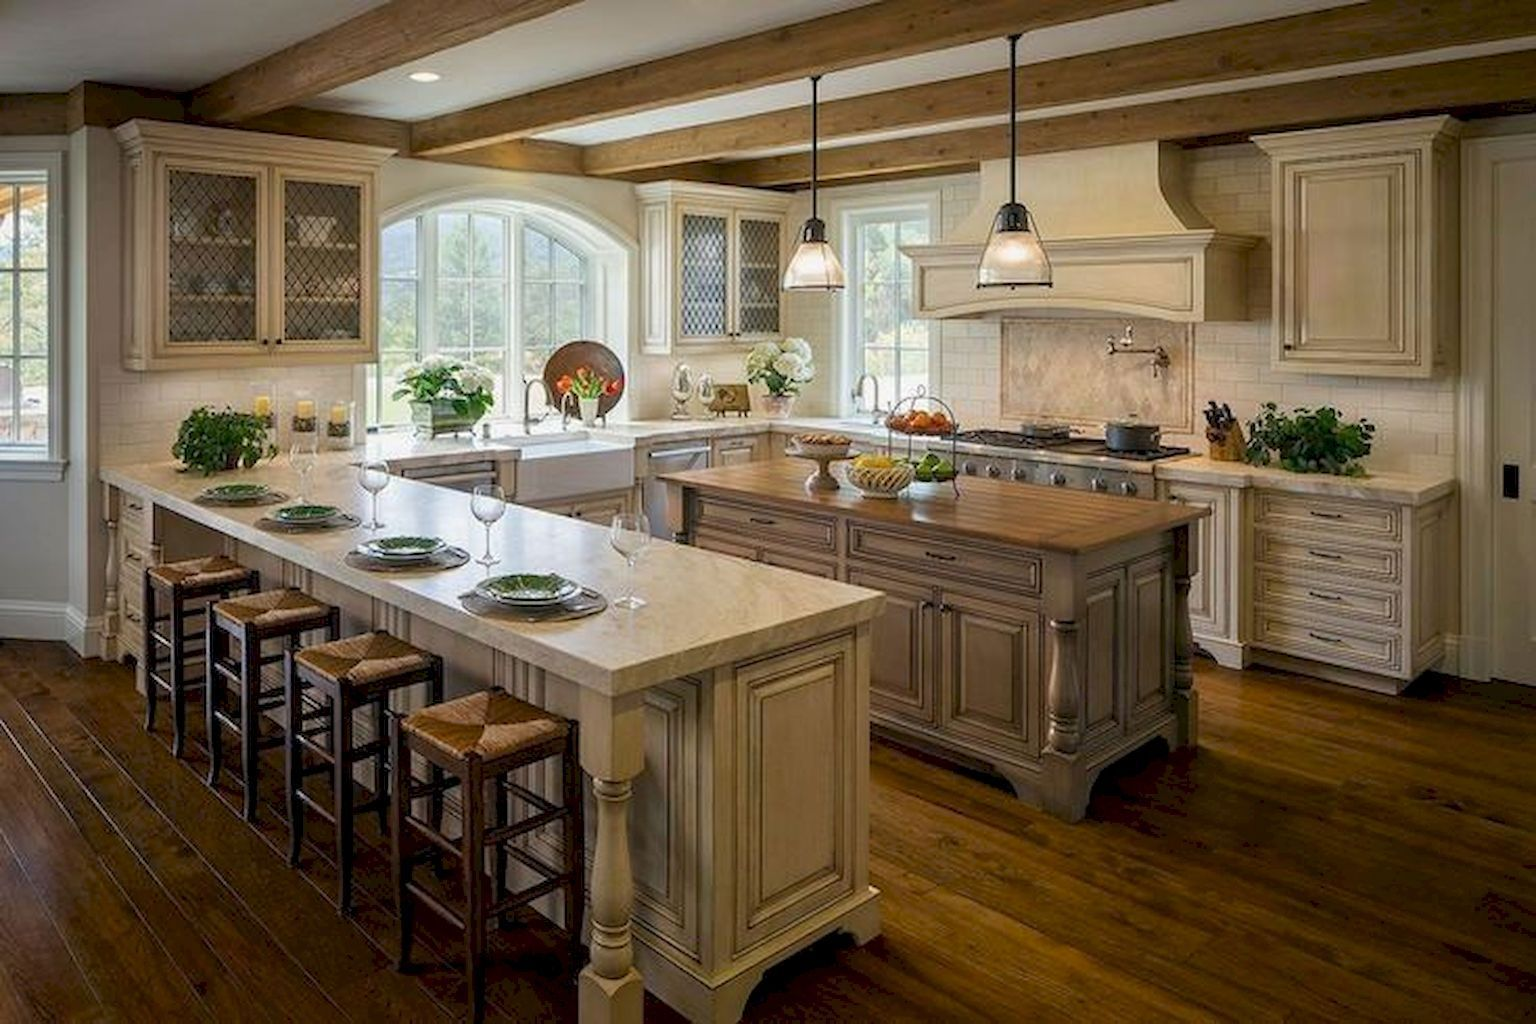 Stunning French Country Kitchen Cabinets Cream 39 in 2019